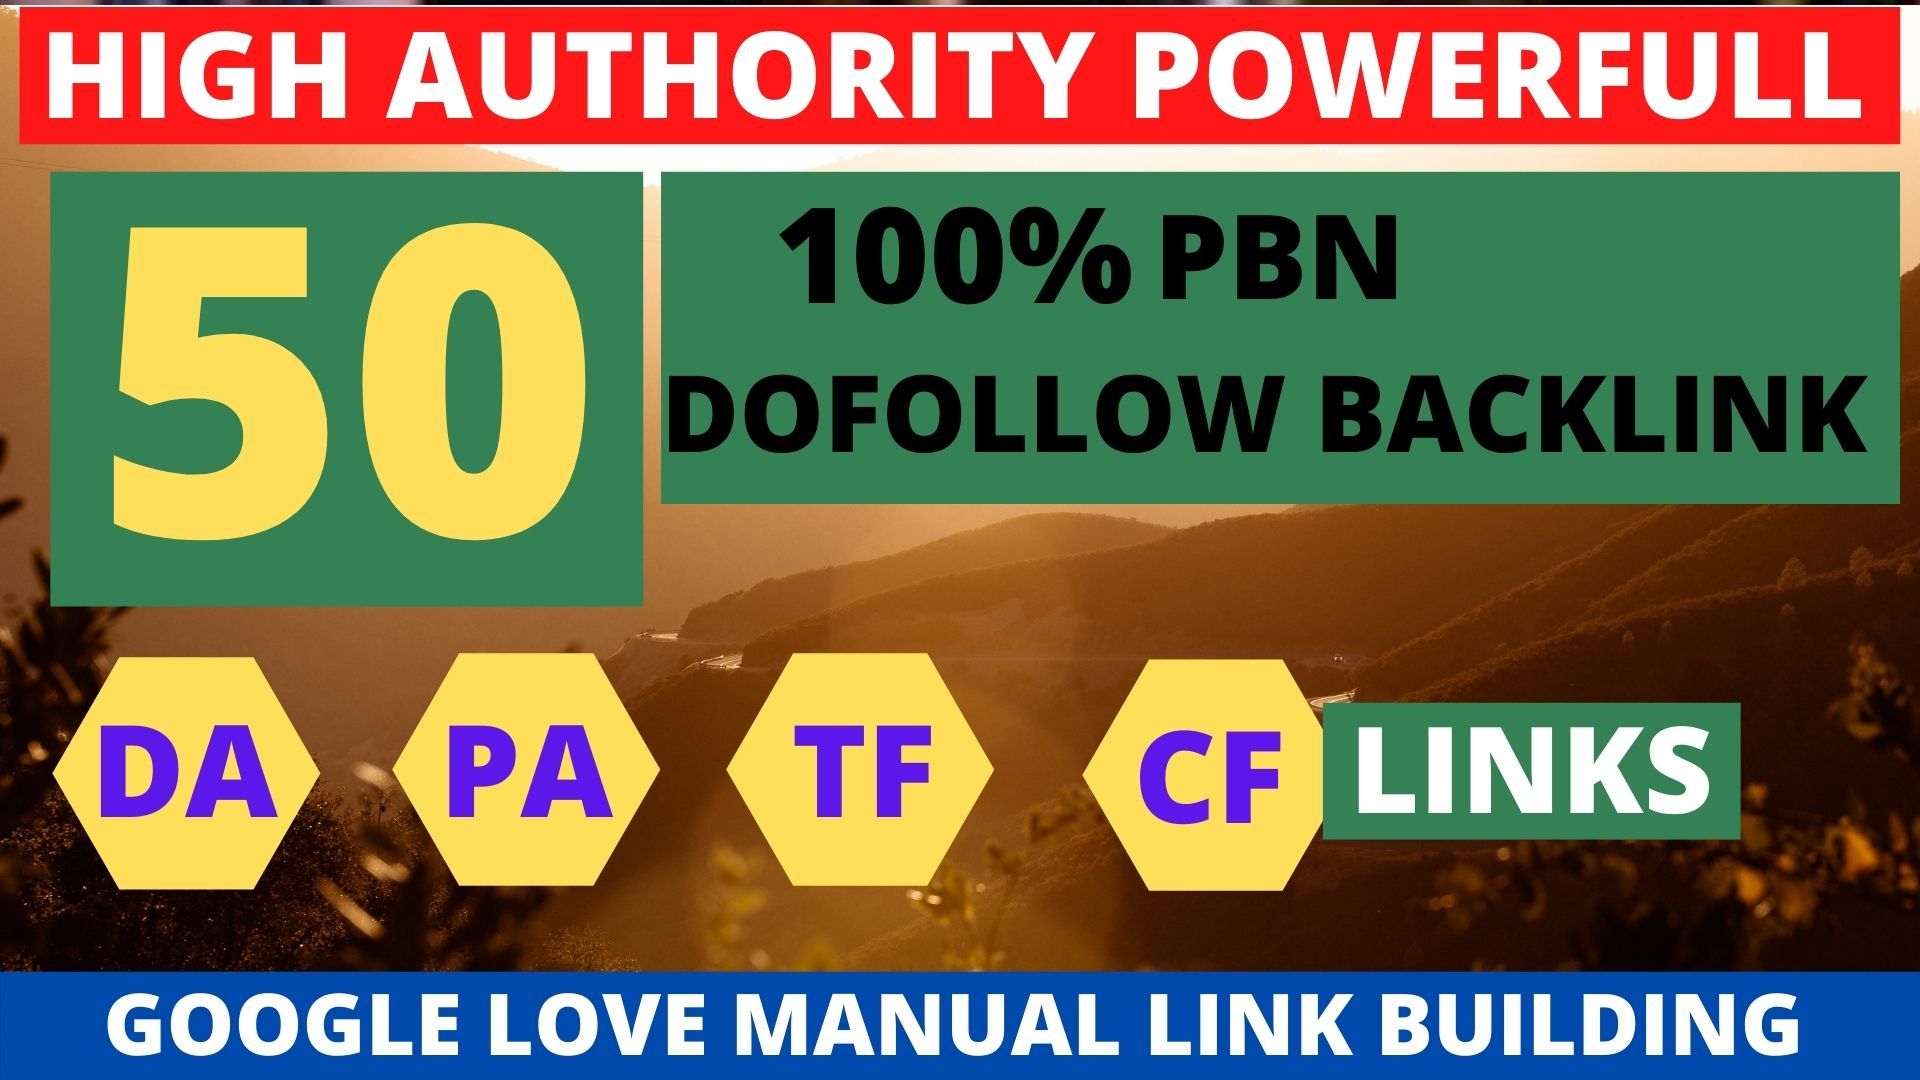 Get powerfull 50+ pbn backlink with high DA/PA/TF/CF on your homepage with unique website